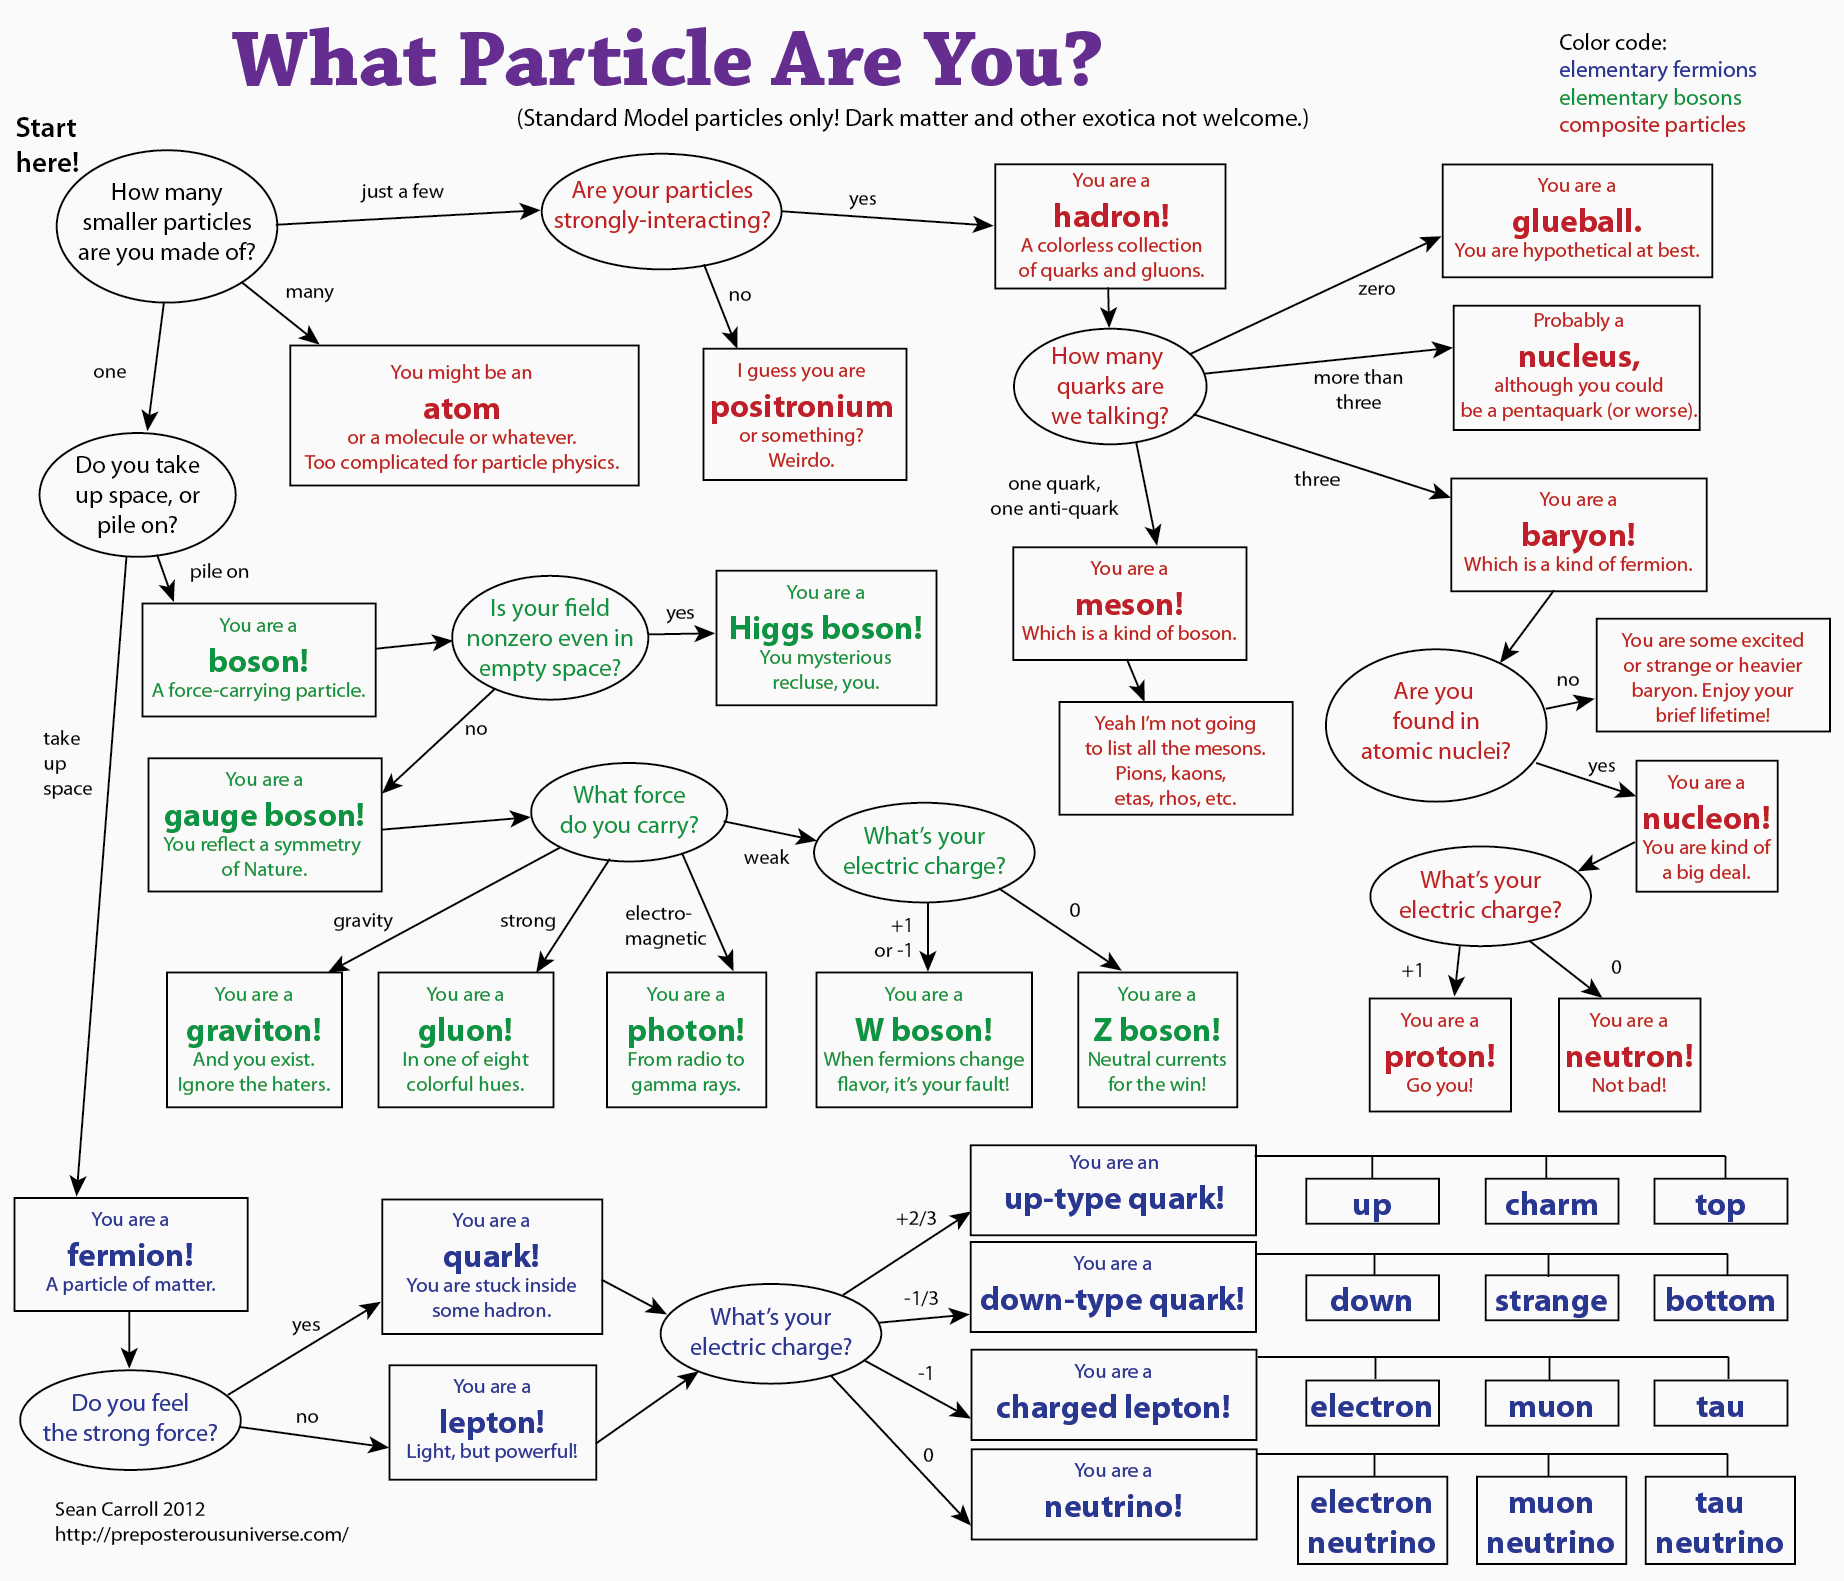 WhatParticle3.png